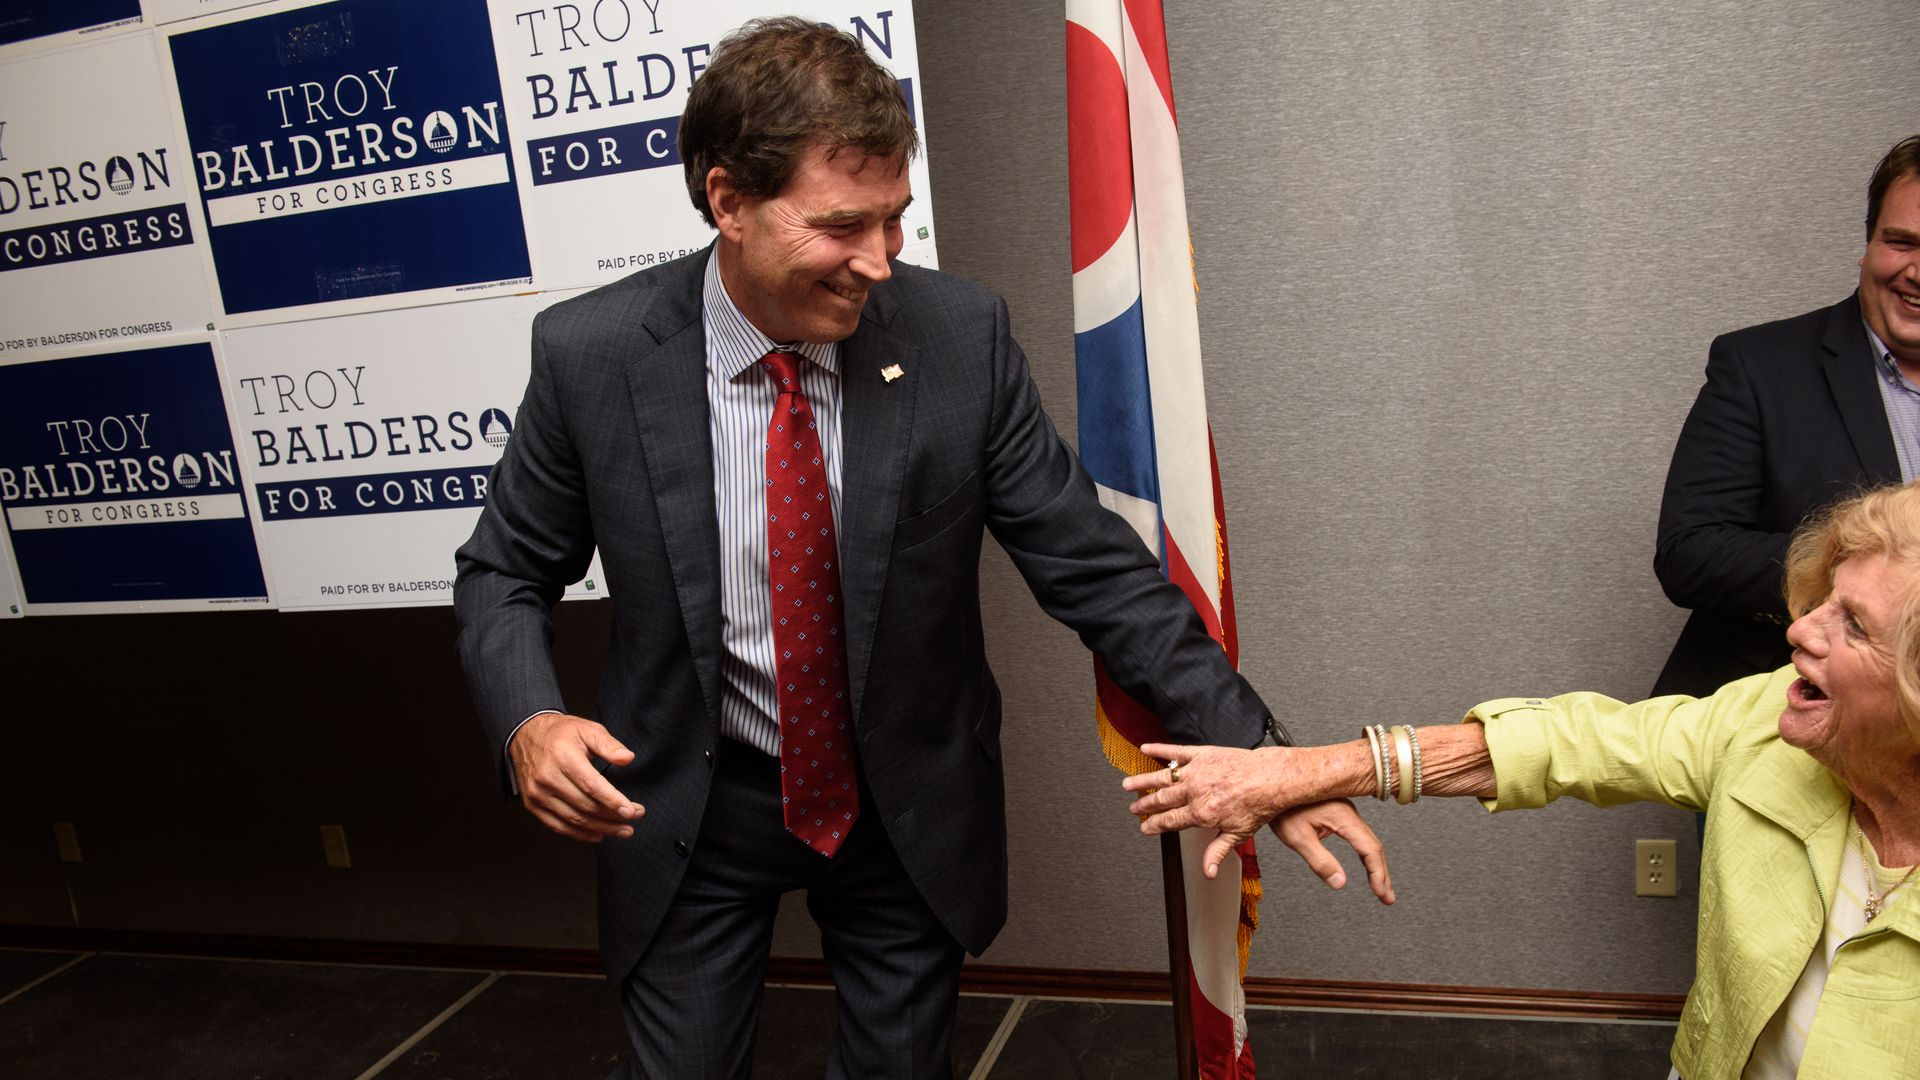 Republican Troy Balderson stepping down off a platform after giving a speech and smiling at a member in the crowd who is reaching out a hand toward him